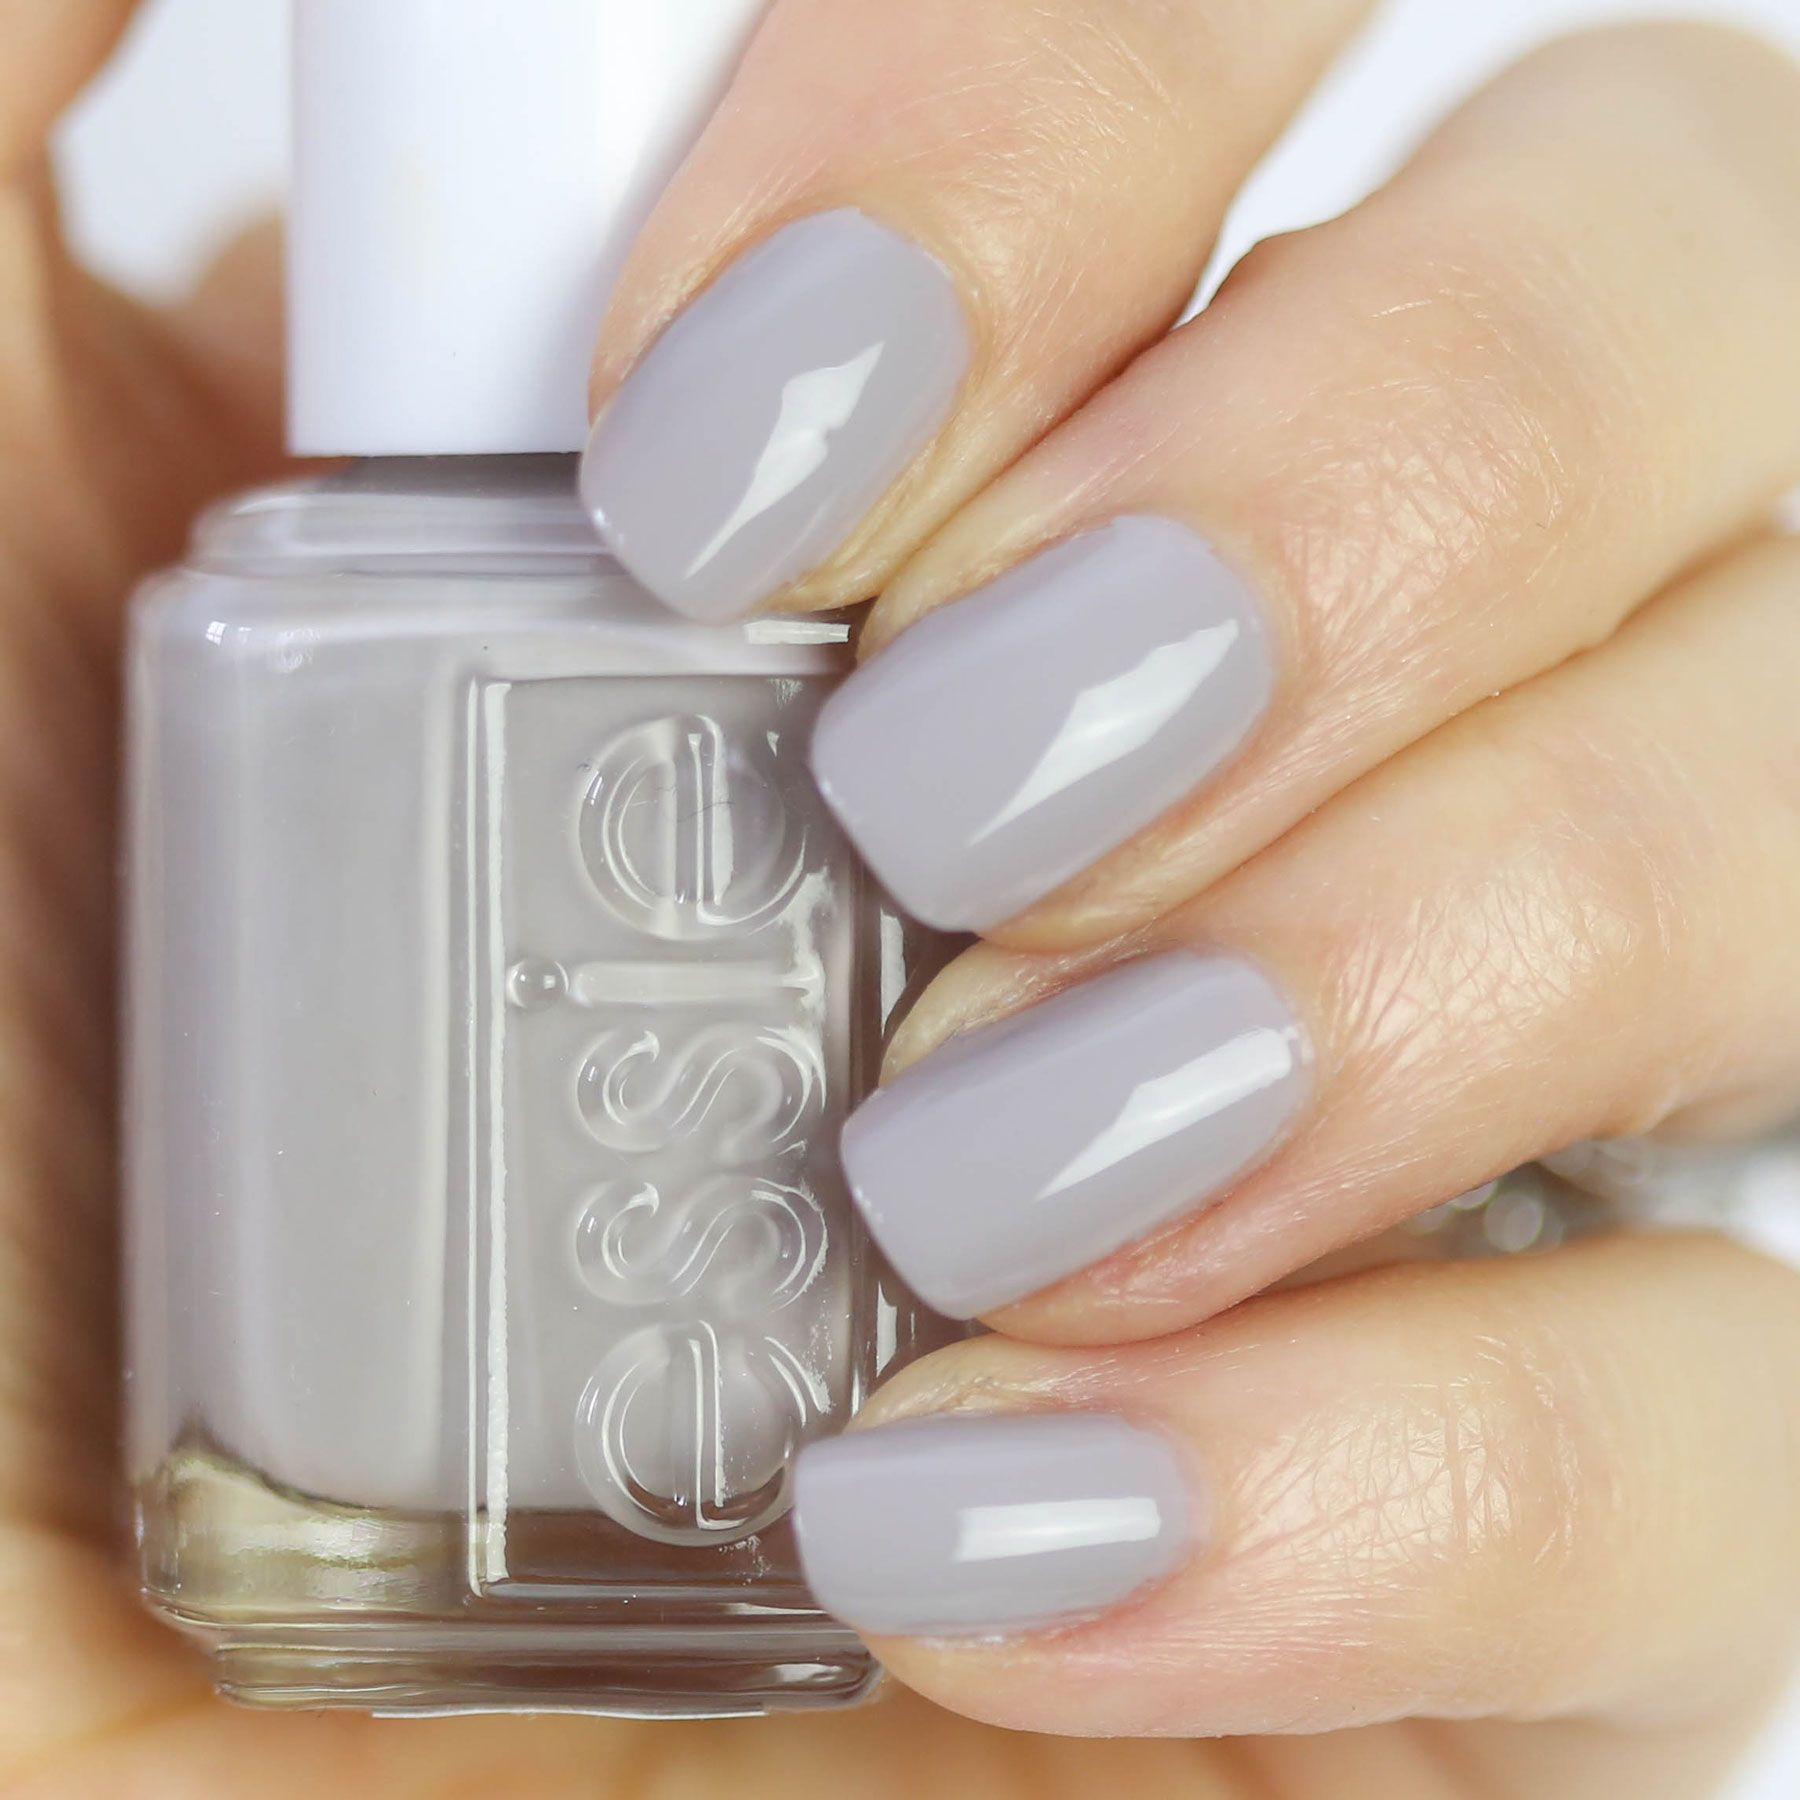 Blue Grey Nail Polish Essie: Essie Without A Stitch, Essie Wild Nude Collection, Nude